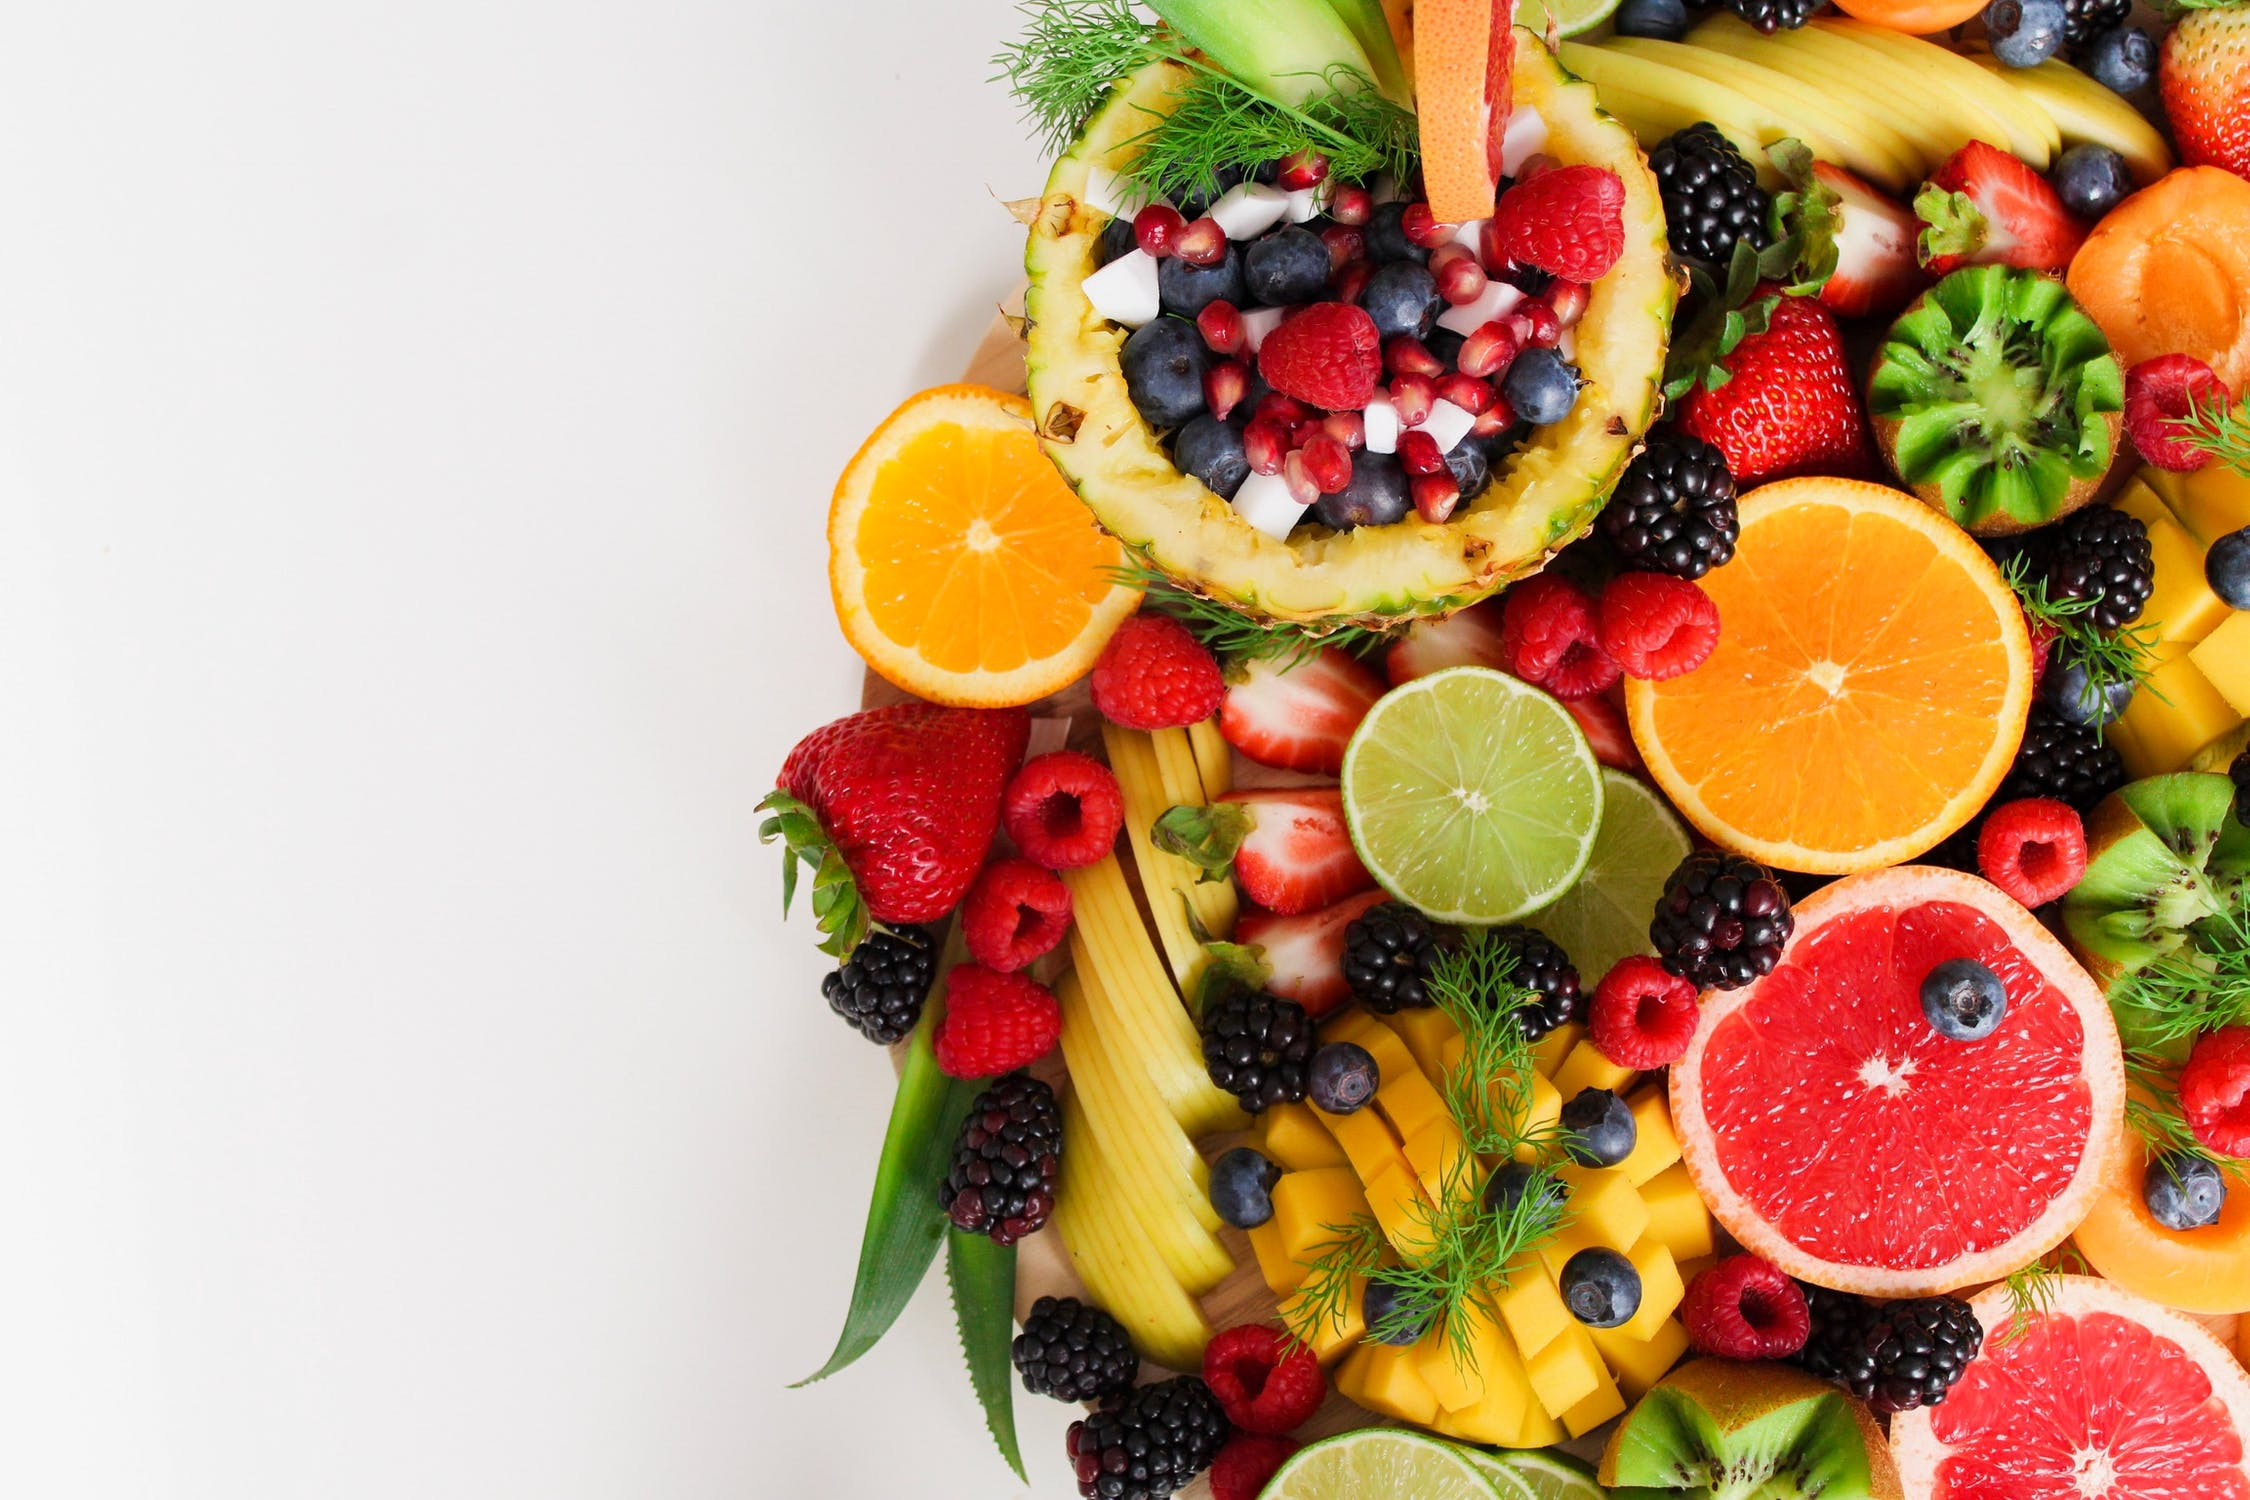 A dietitian is a specialized nutritionist